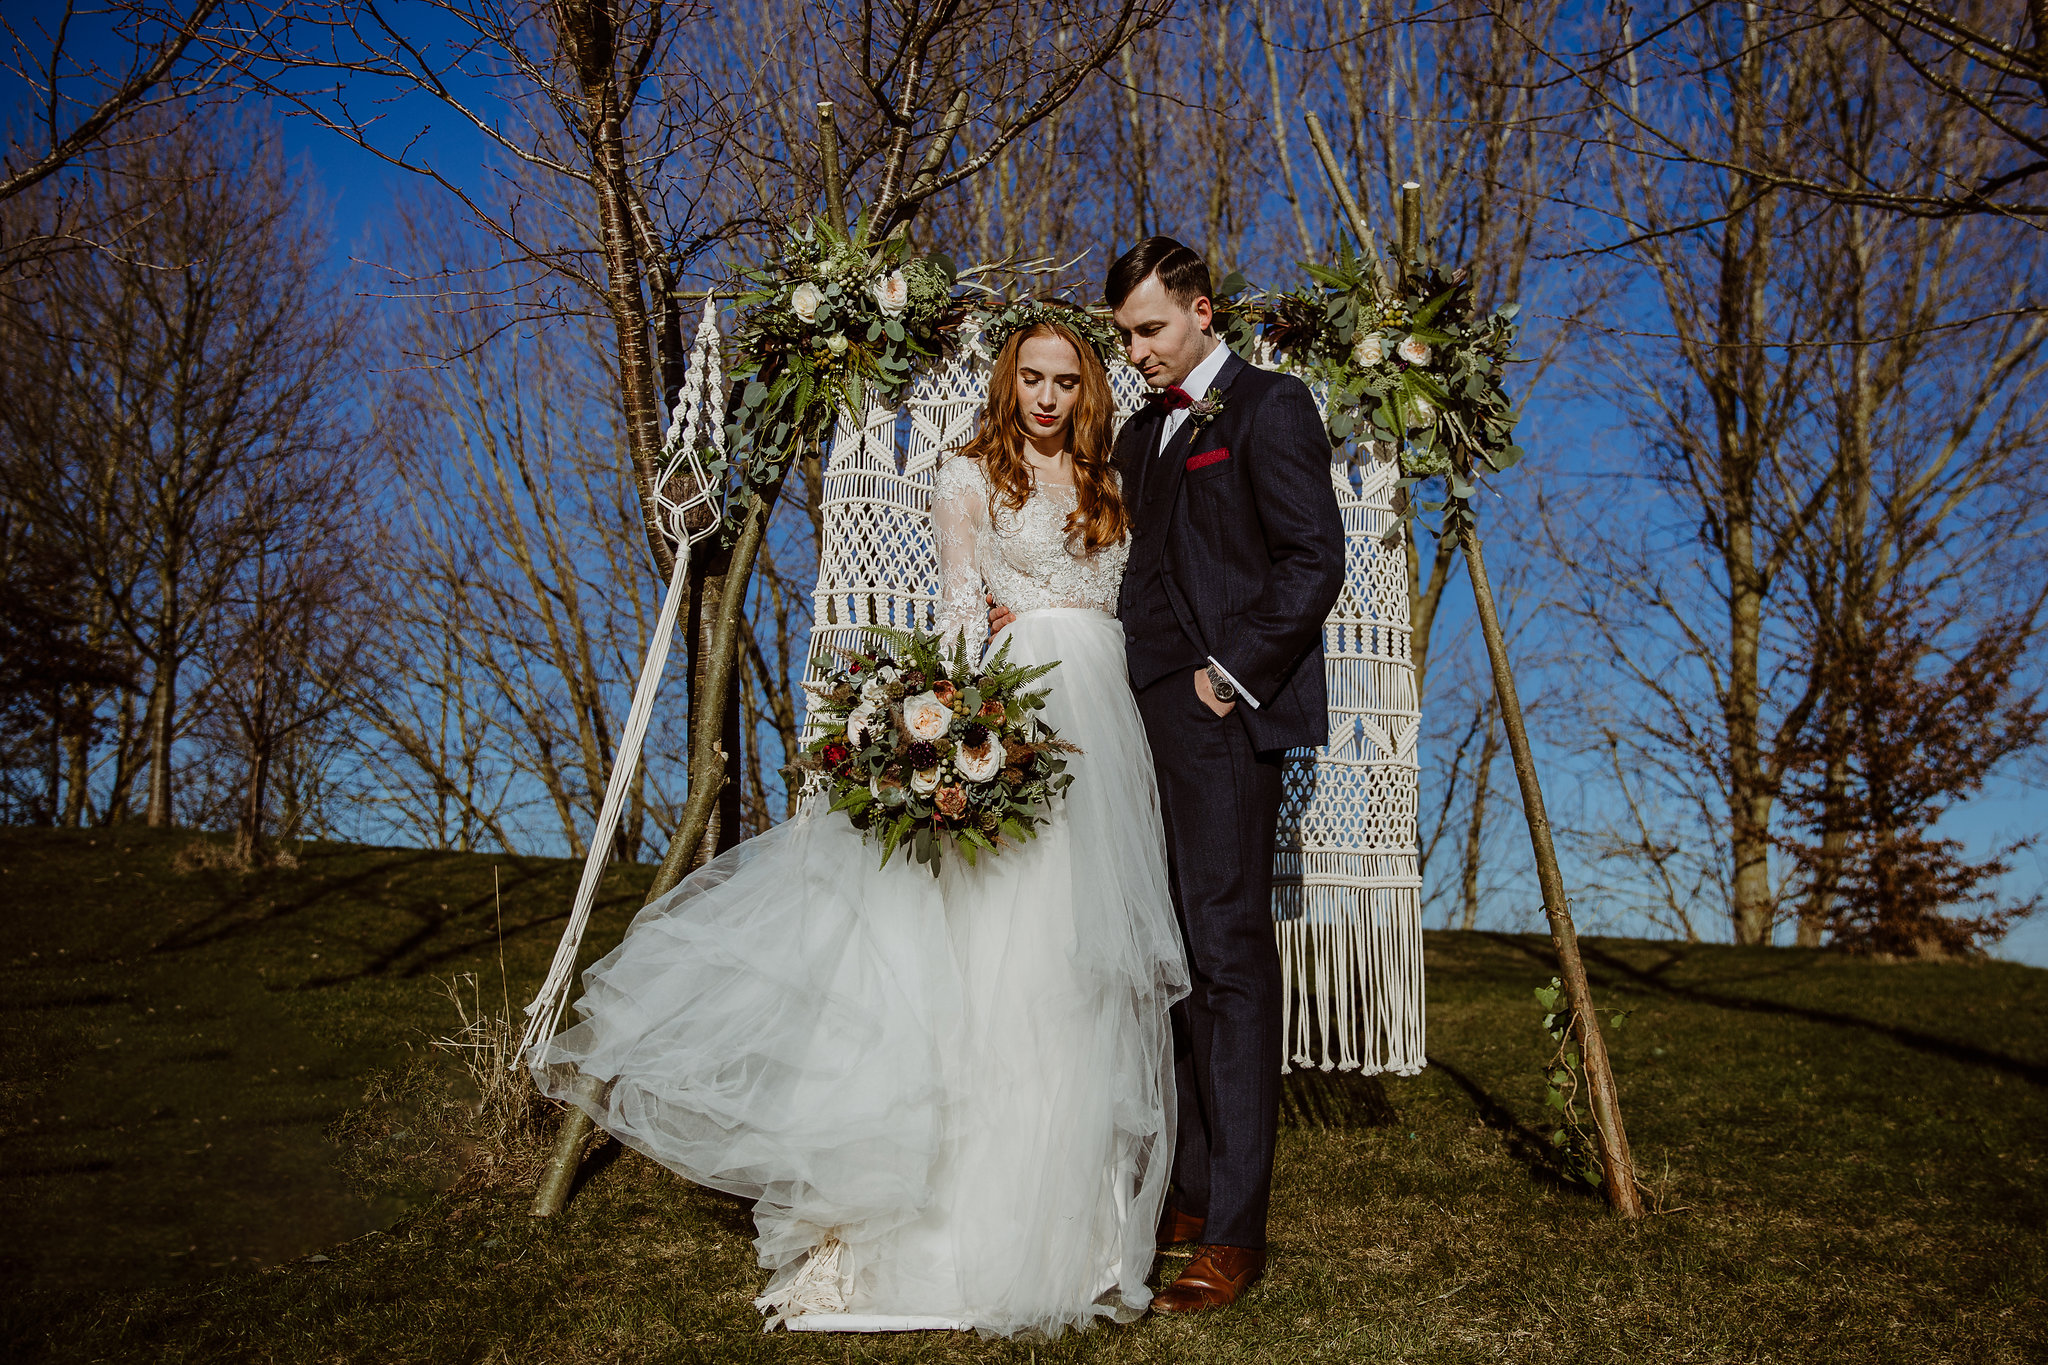 Winter lakeside wedding